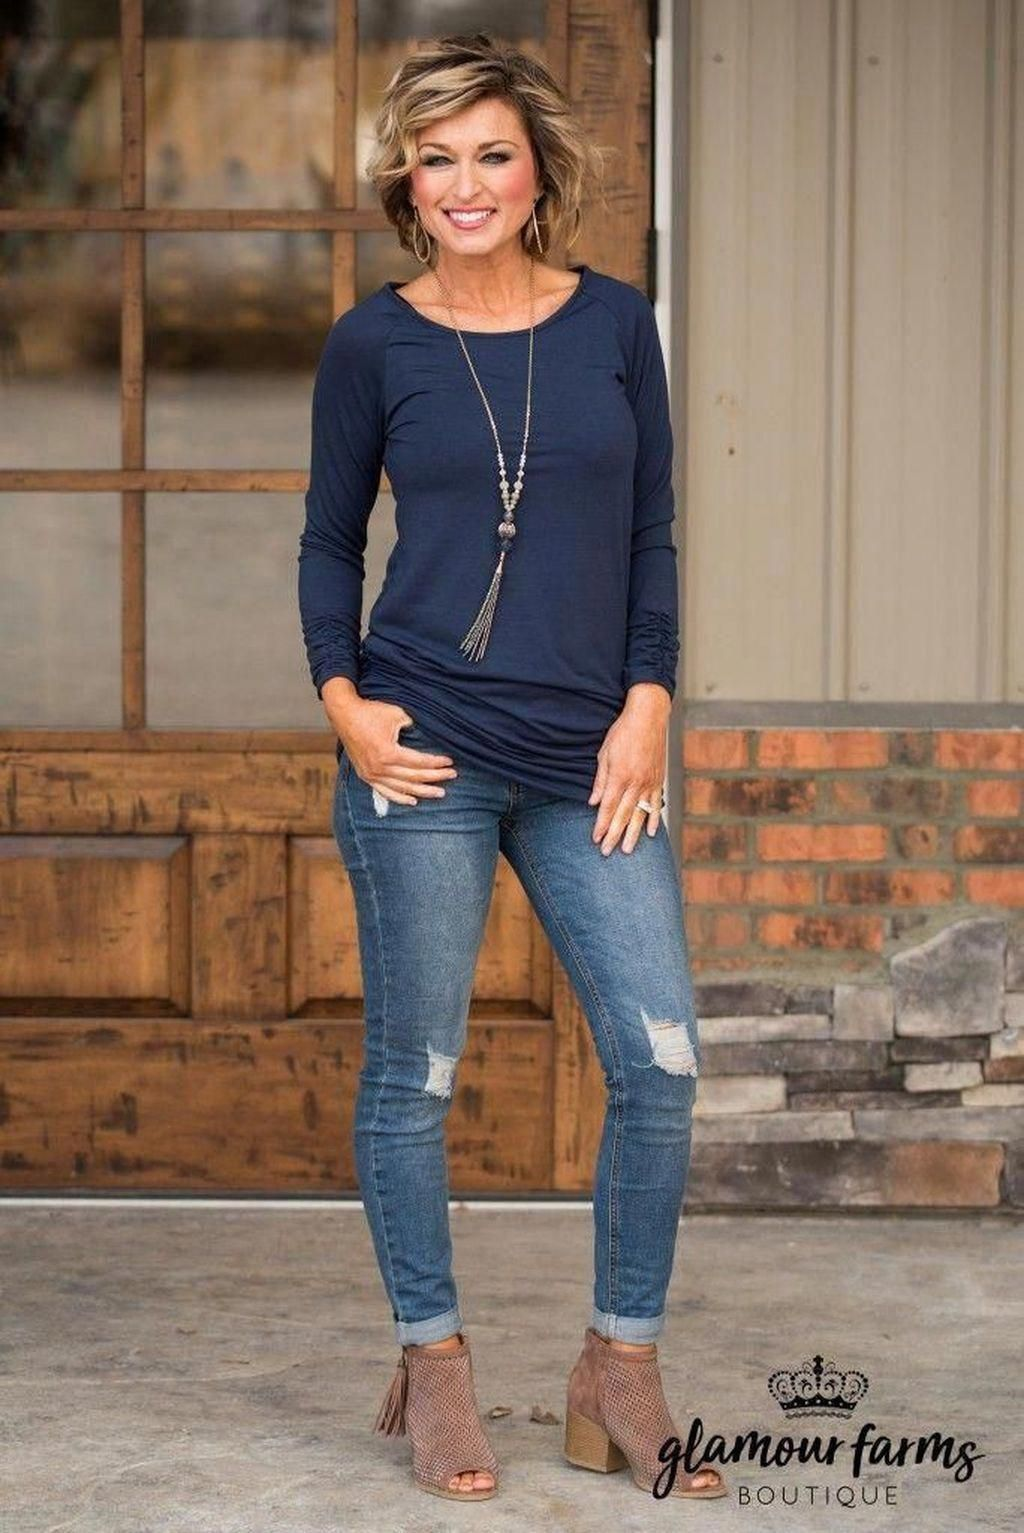 49 Rustic Fall Outfit Ideas For Women Over 40 Years In 2020 Spring Outfits Casual Summer Fashion Trends Over 50 Womens Fashion